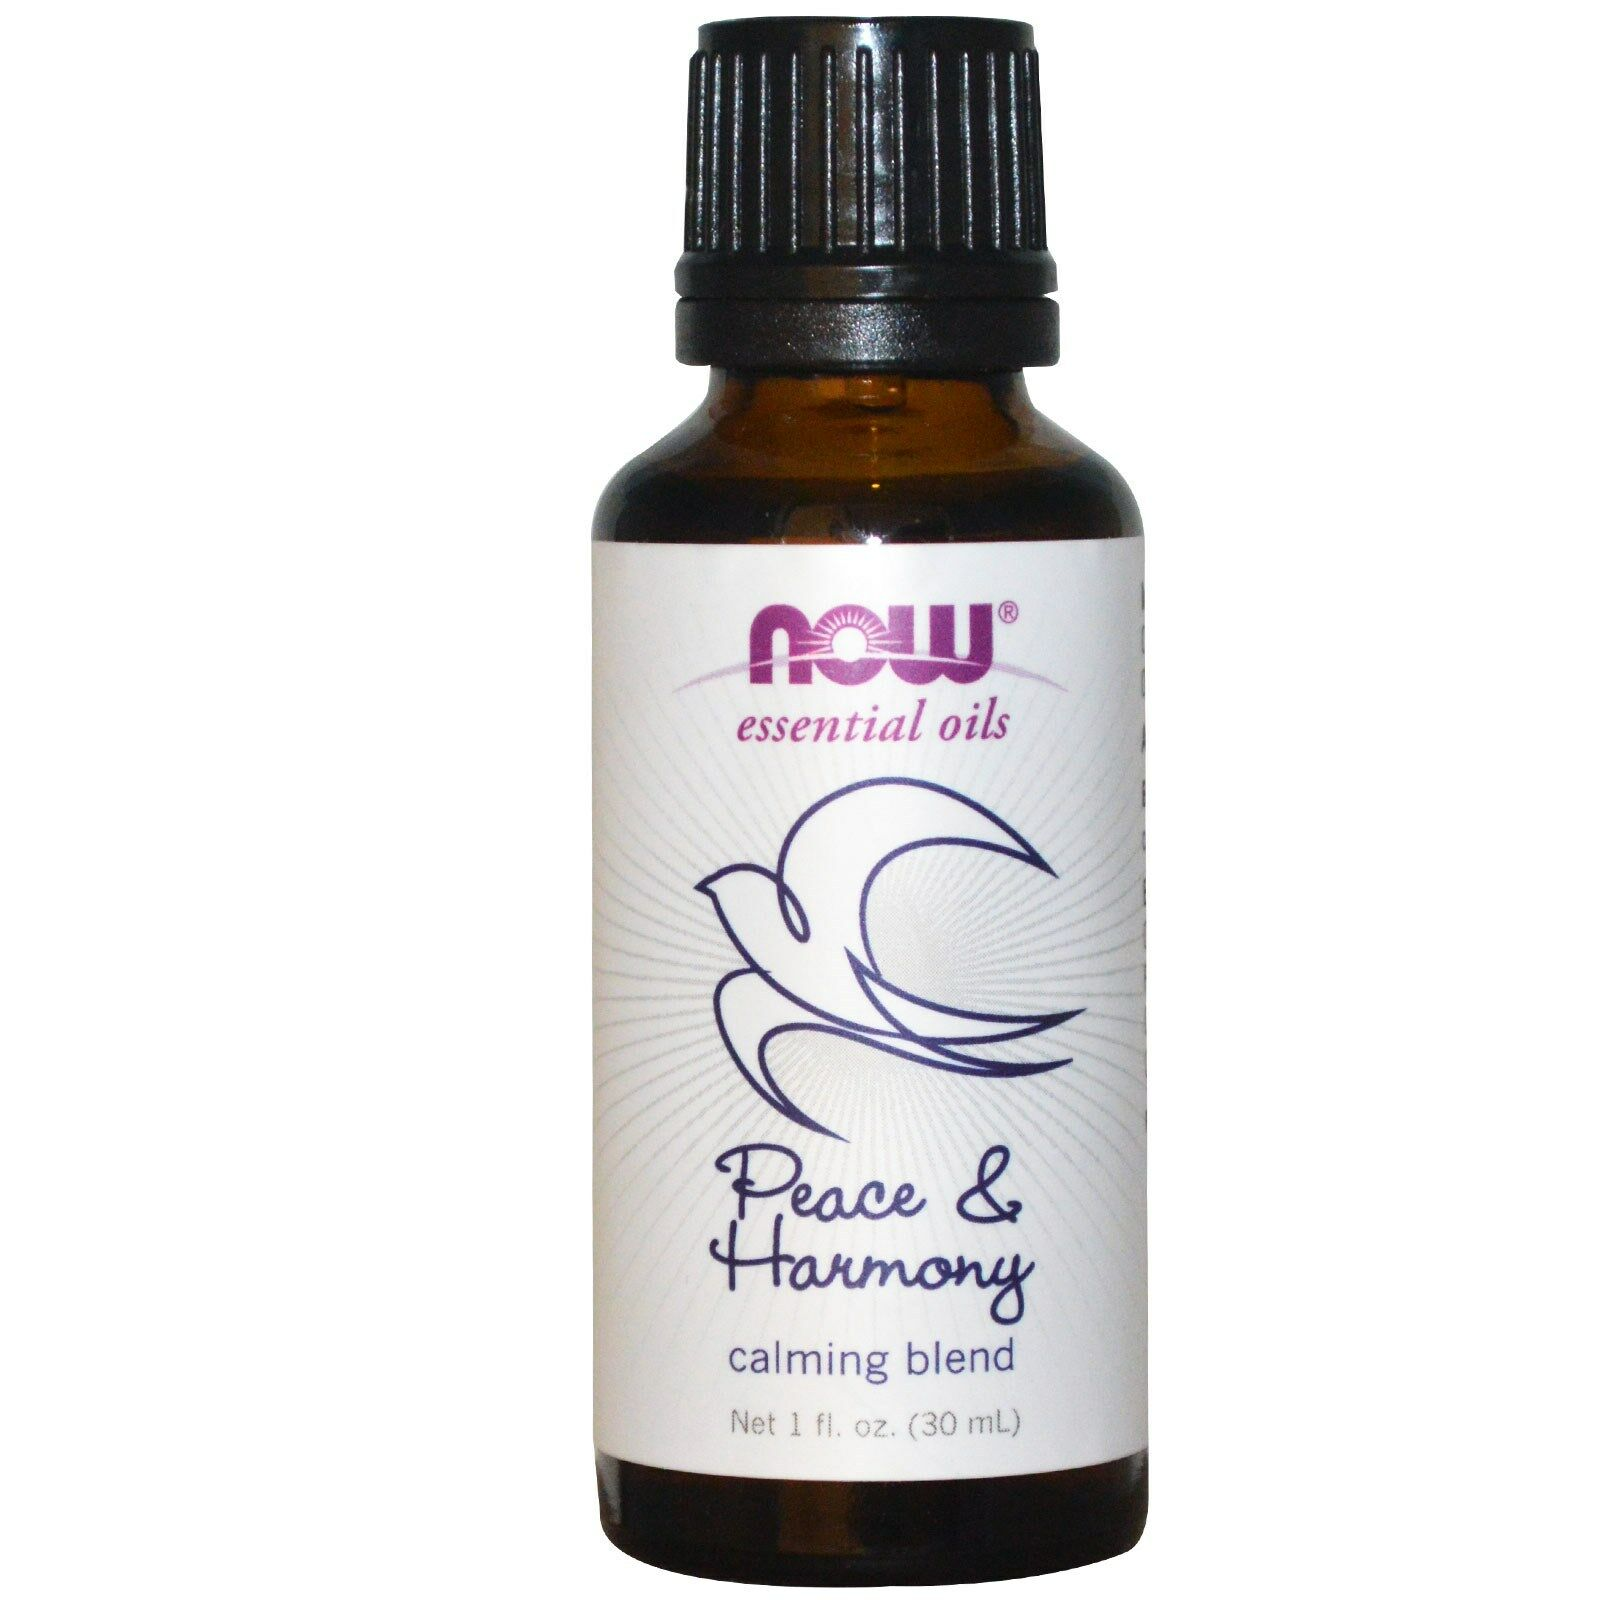 NOW Foods 1 oz Essential Oils and Blend Oils - FREE SHIPPING! Peace & Harmony Blend